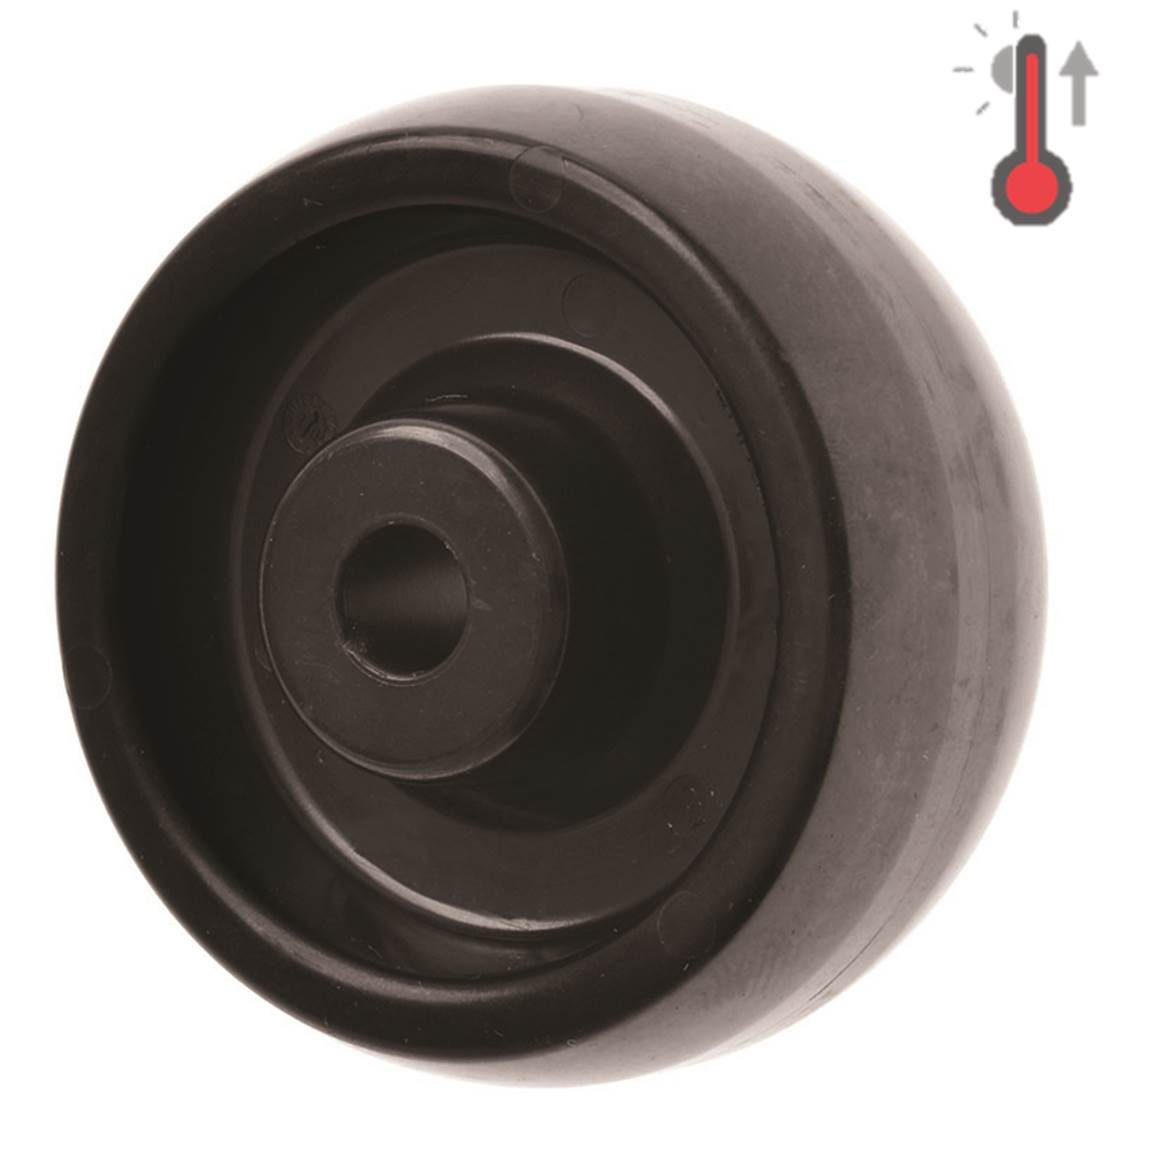 High Temperature Wheels for ovens